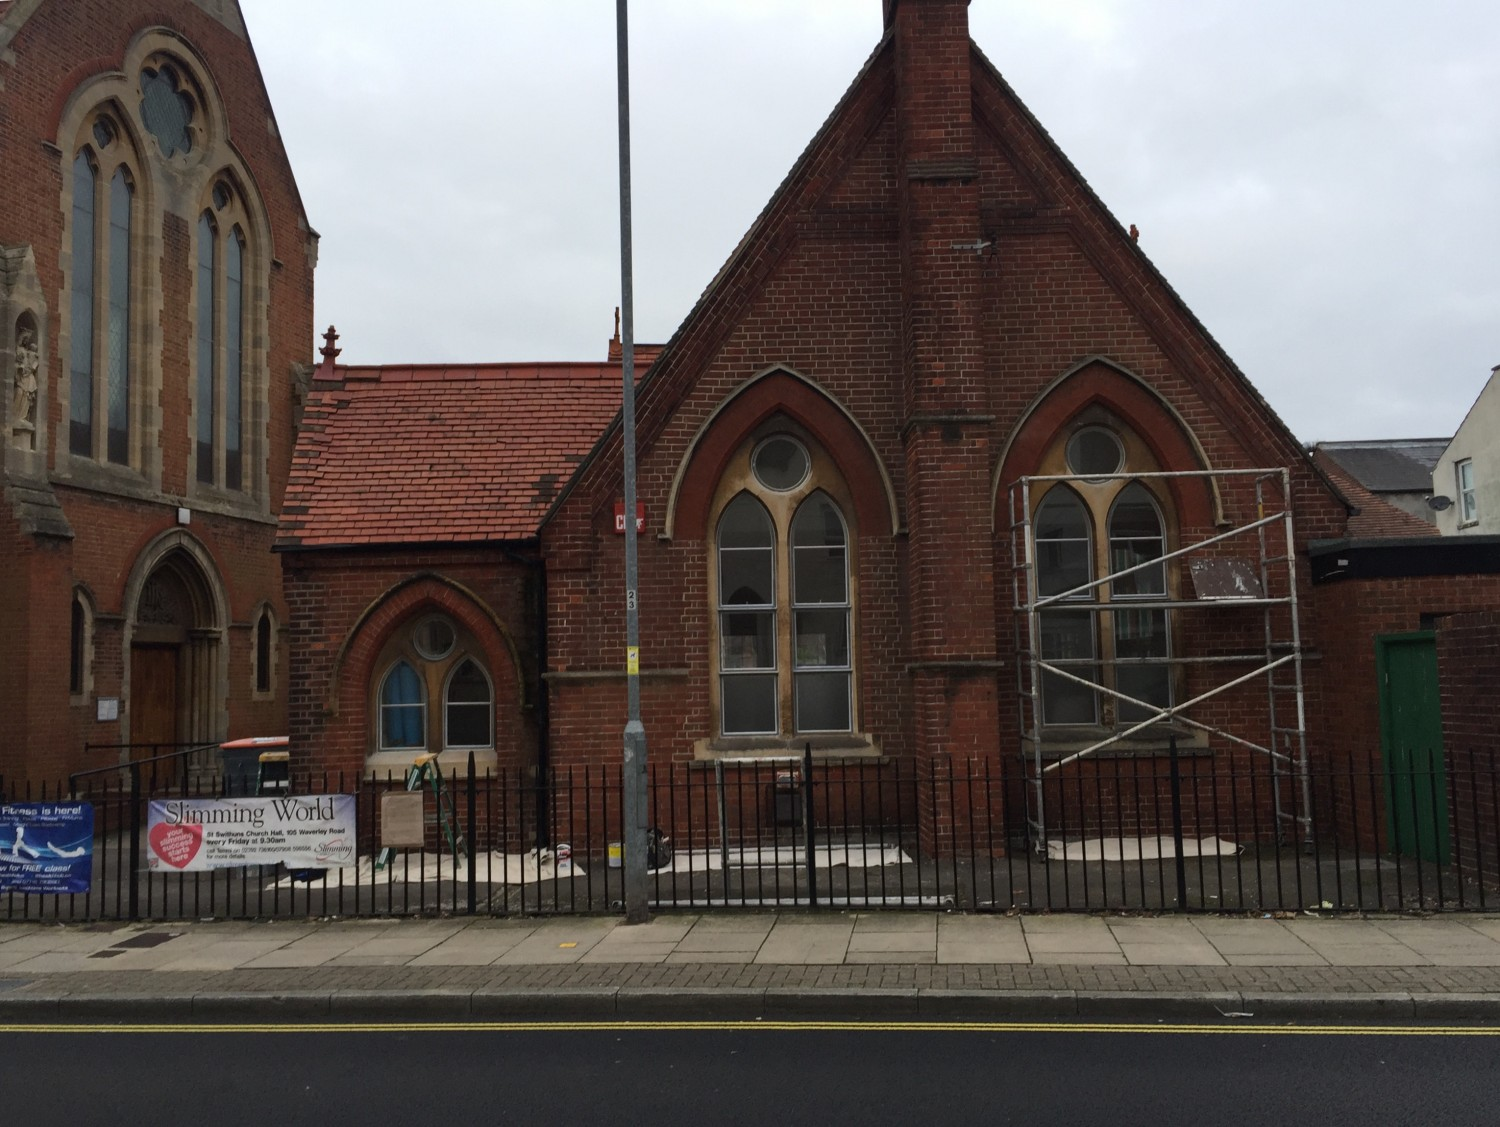 Church Crittall metal Windows and timber box sash replacement and repair glazing sandblasting welding priming and painting